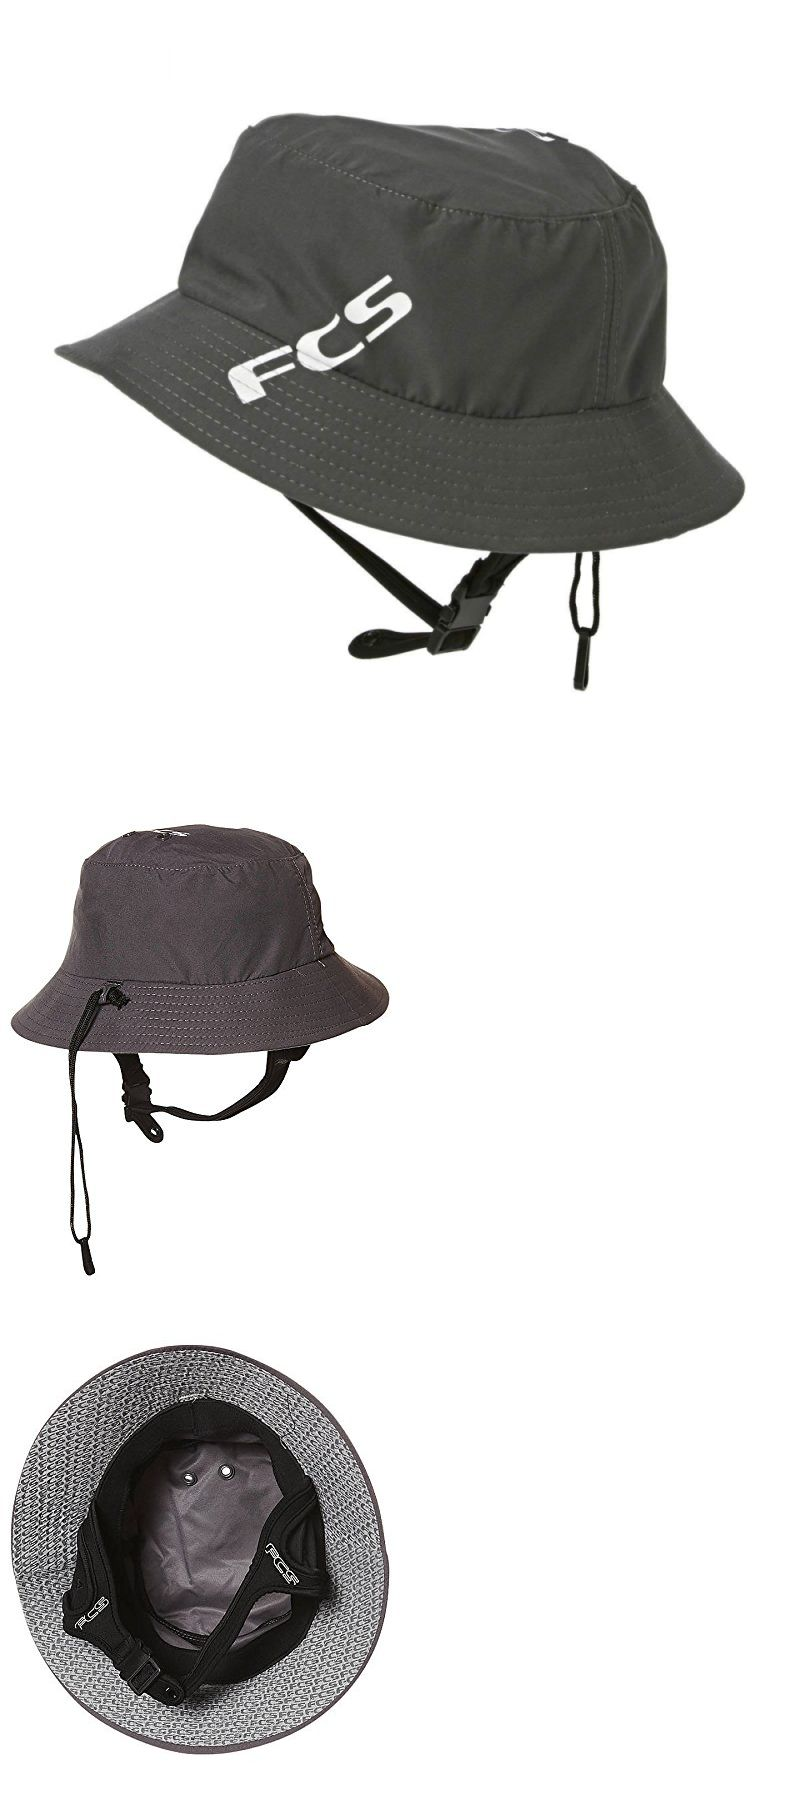 273a5117899 Accessories 71164  Fcs Wet Bucket Surf Hat (Gunmetal Grey - Large X-Large)  -  BUY IT NOW ONLY   25.59 on  eBay  accessories  bucket  large